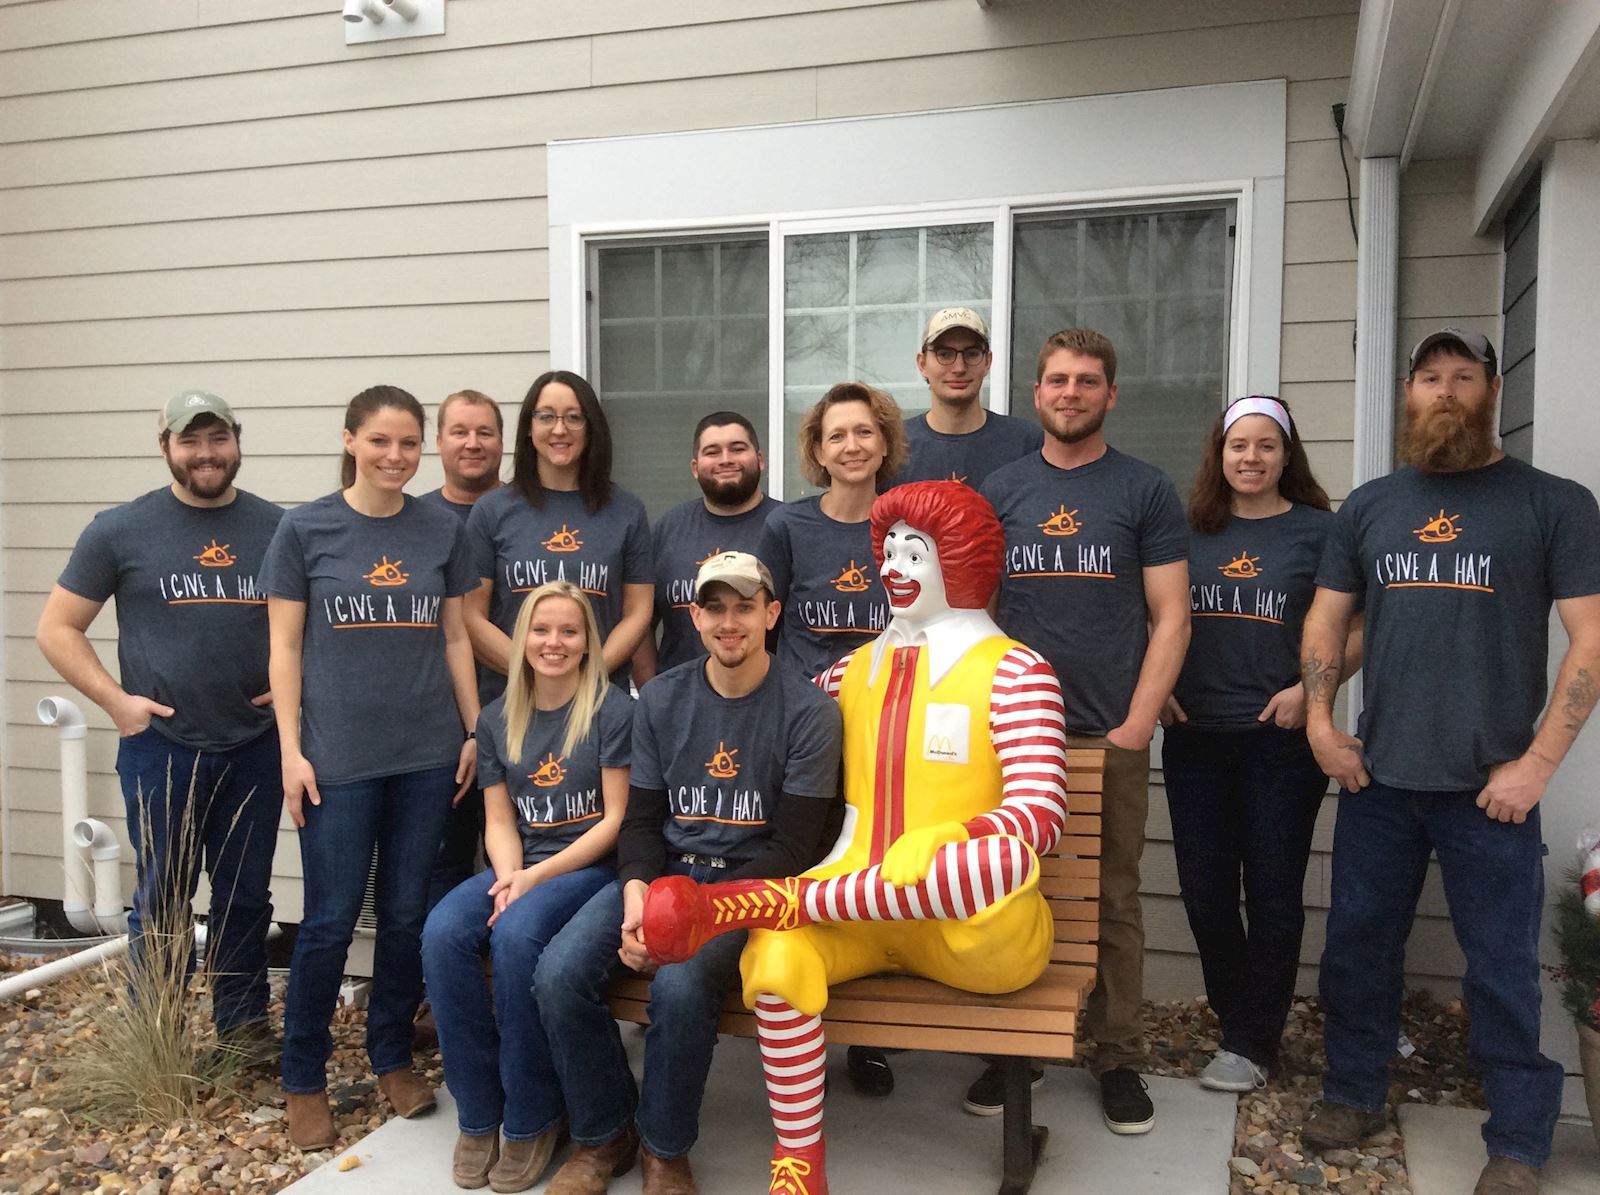 Pork meal brings smiles to Ronald McDonald House